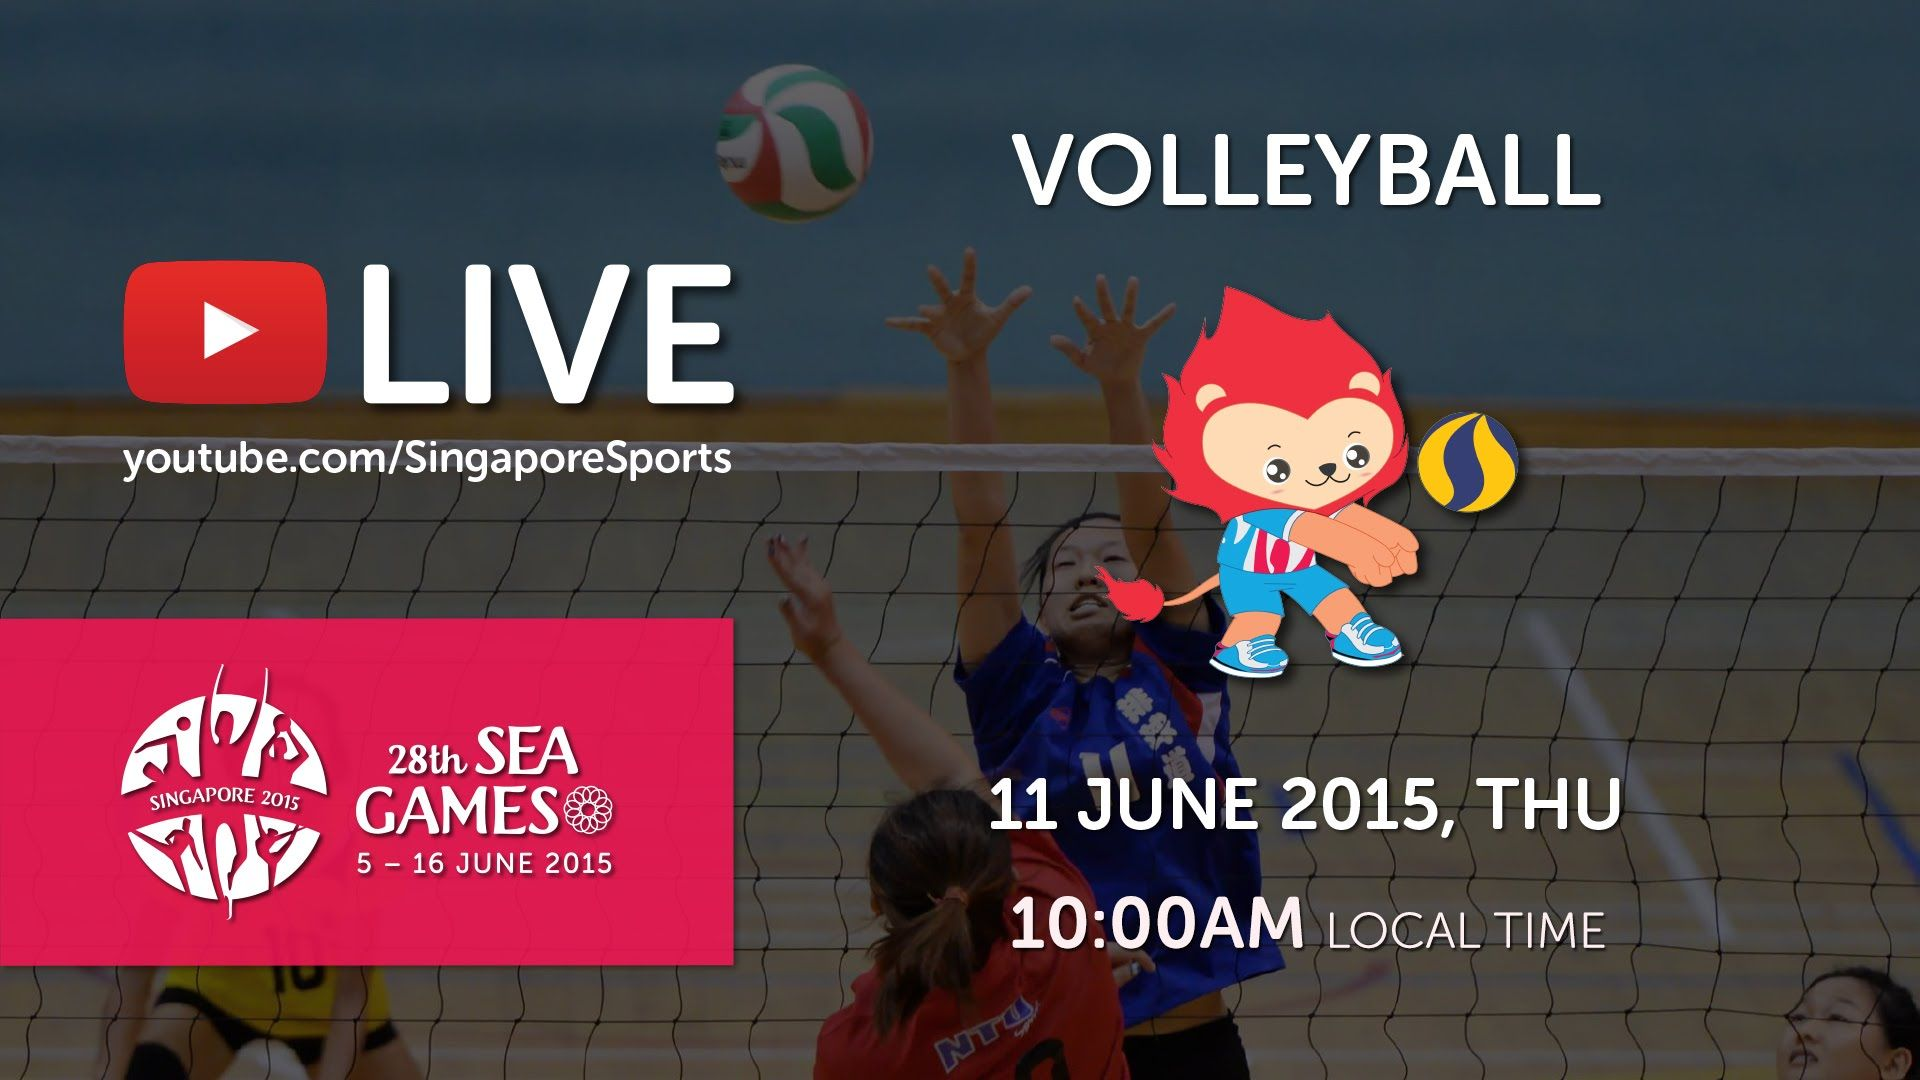 Volleyball Women S Malaysia Vs Philippines I 28th Sea Games Singapore 2015 Volleyball Day Volleyball Live